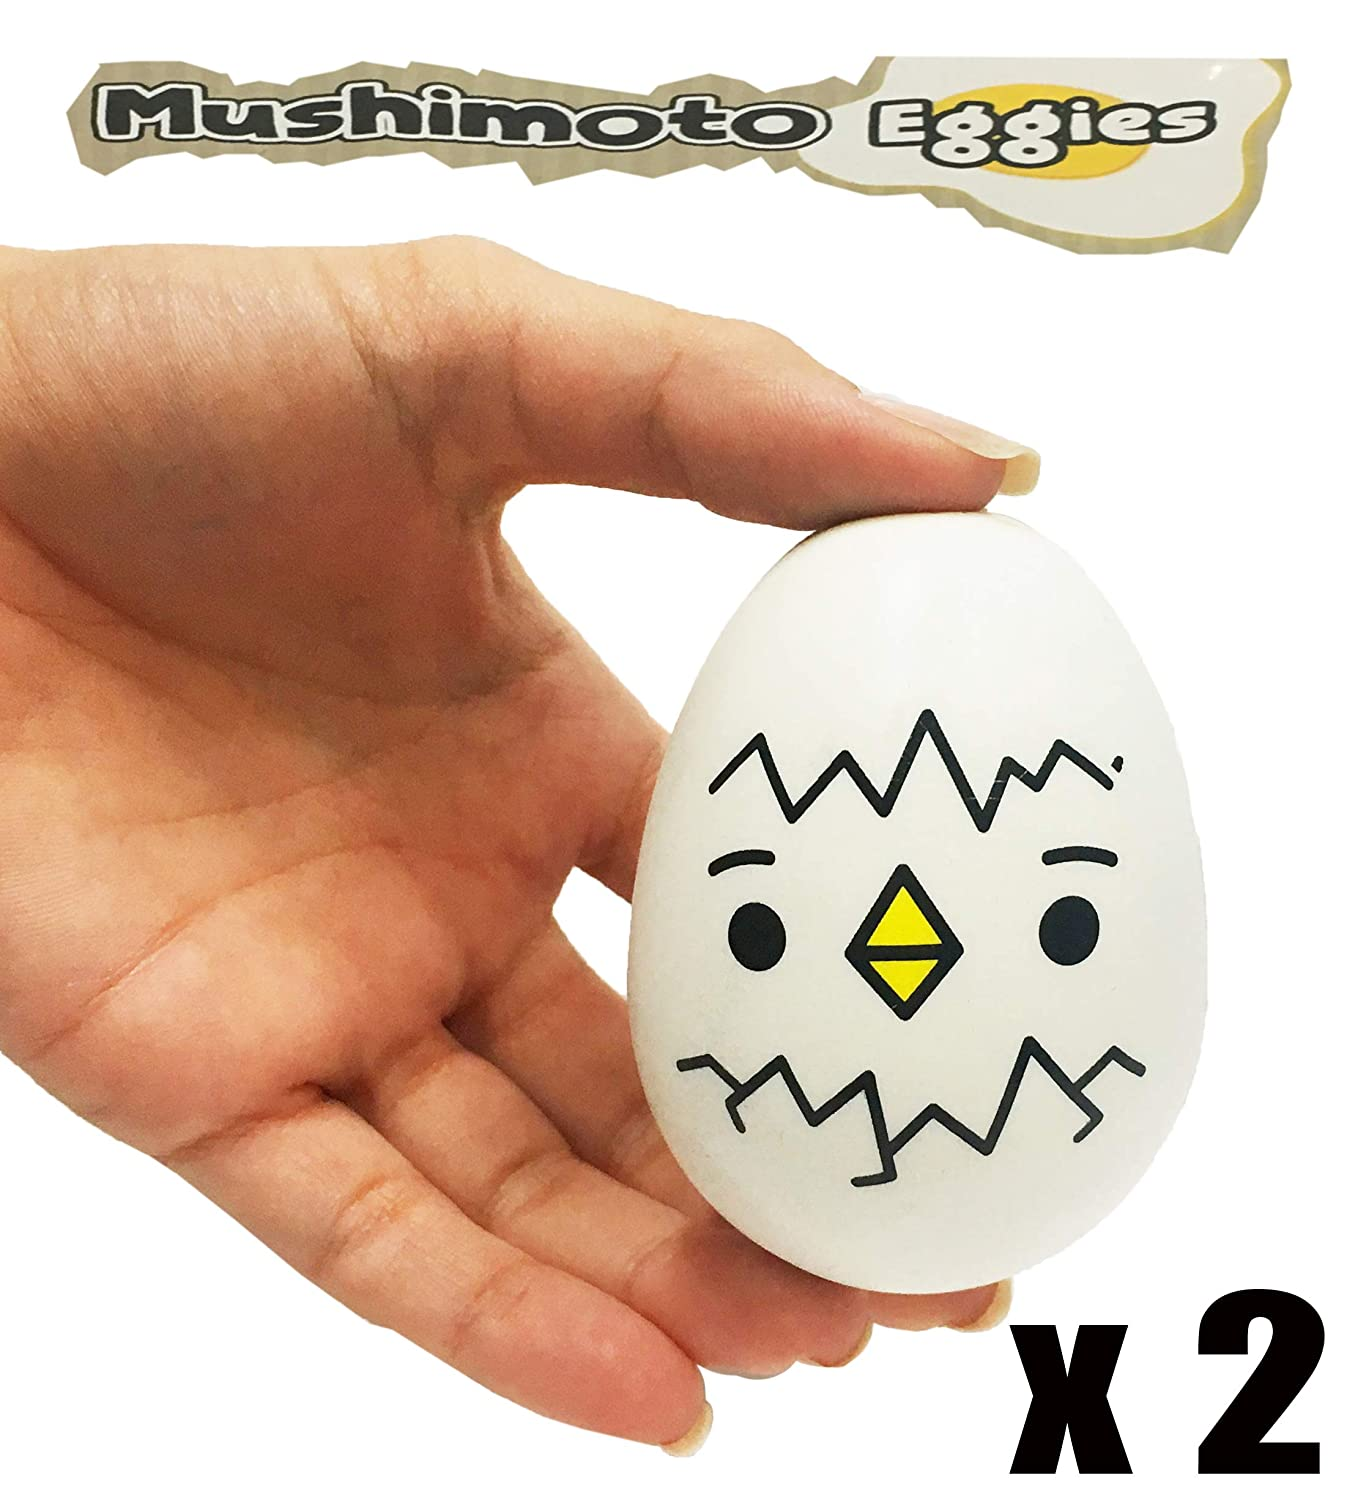 Animolds Mushimoto Eggie Squishies Slow Rising Kids Squishy Toys | 2 Pack Squeeze Toys | Cute Kawaii Squishy Toys | Small Squishies Pack | Stress Relief Squishies Pack